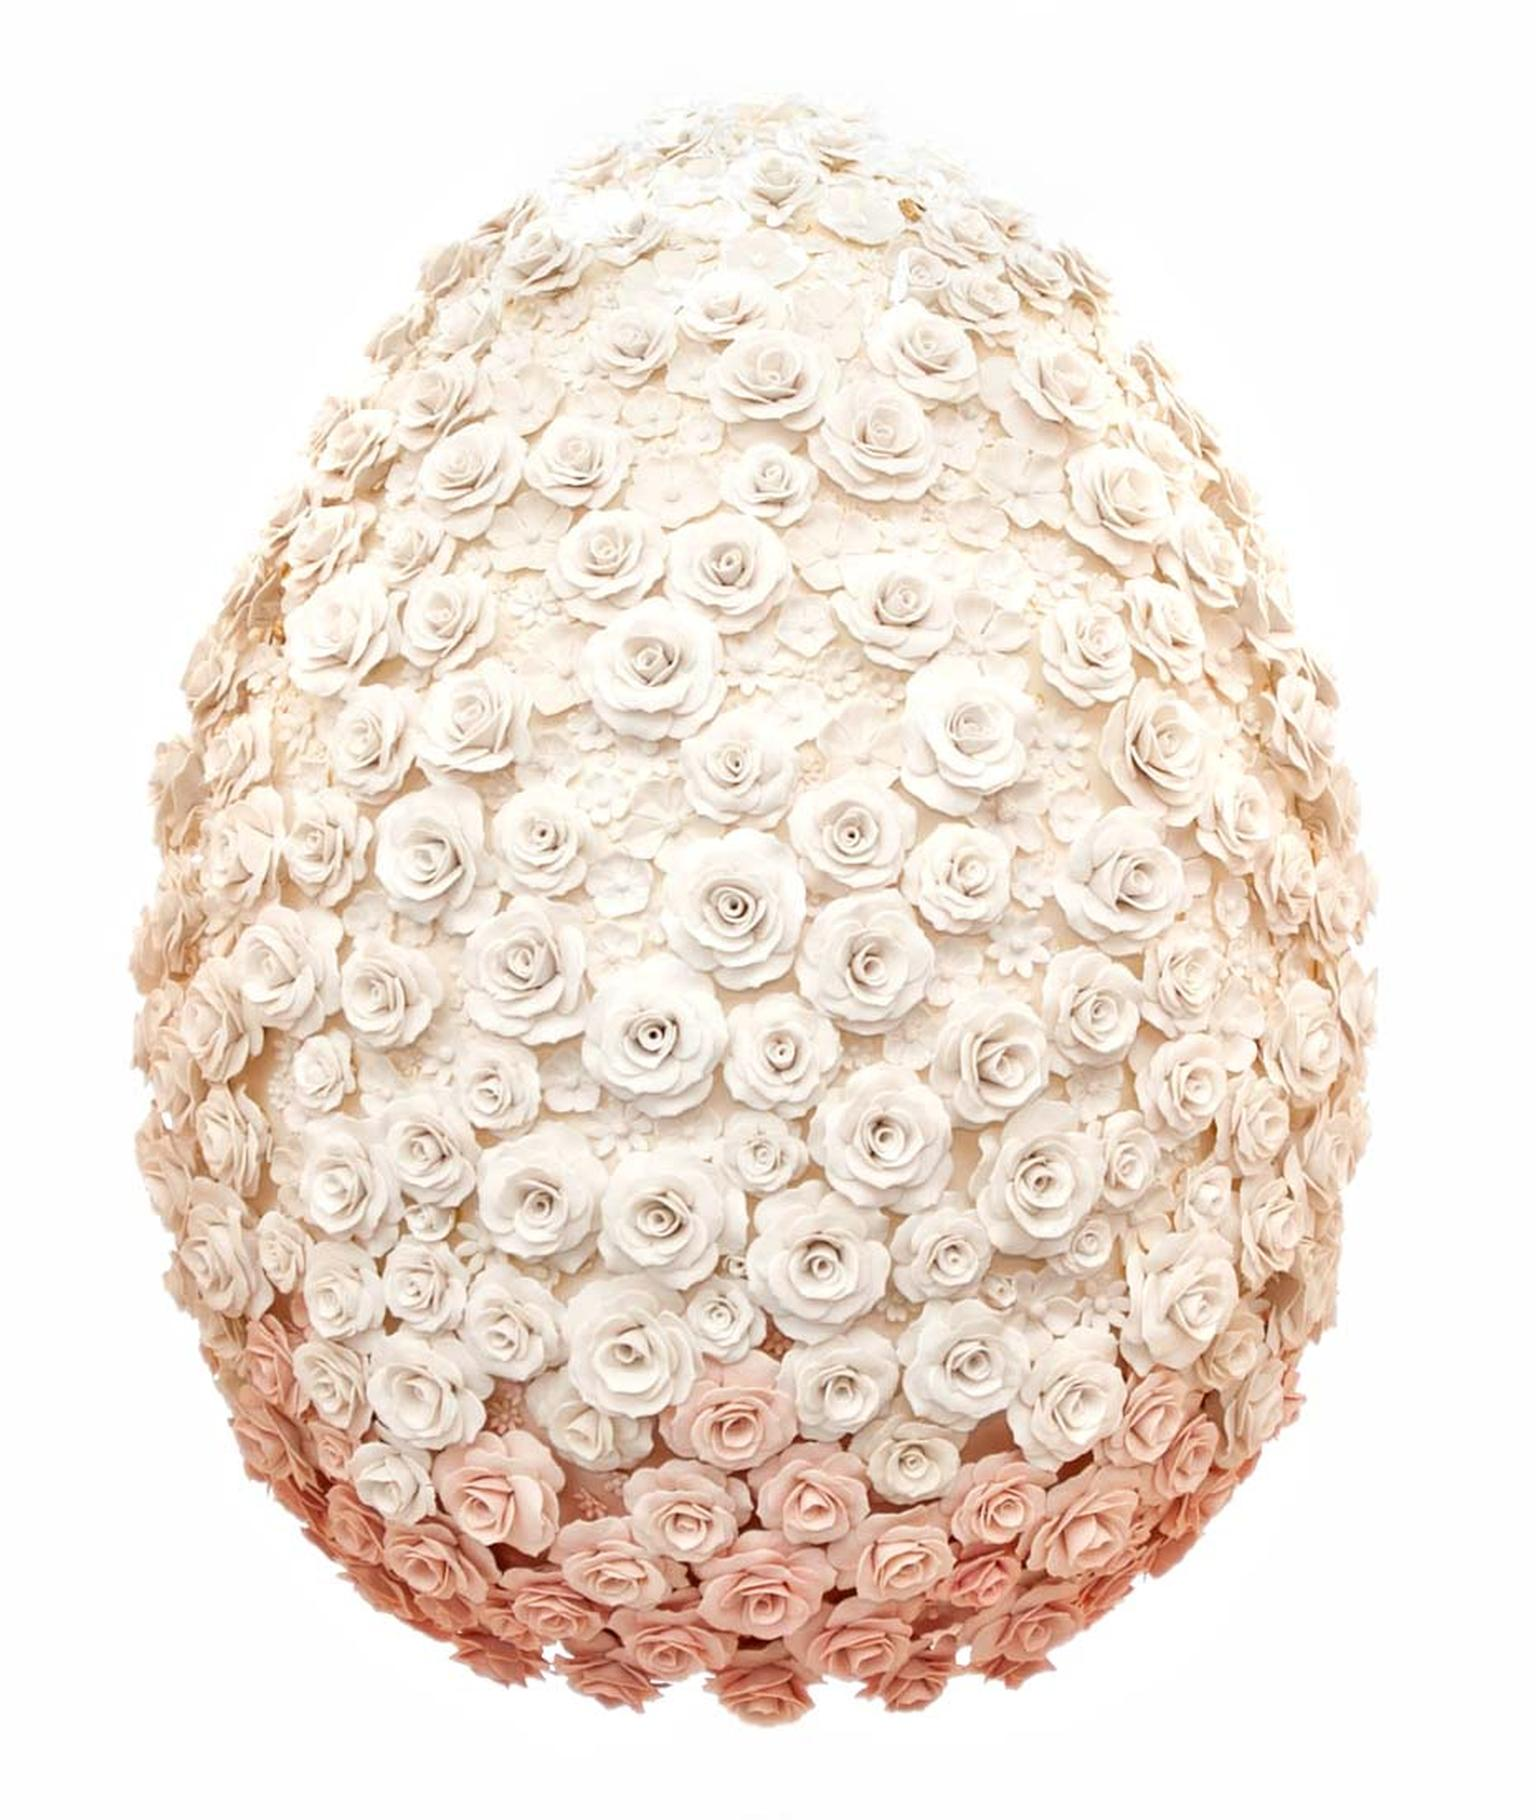 Fabergé Big Egg Hunt - Emma Clegg Egg Sculpture.